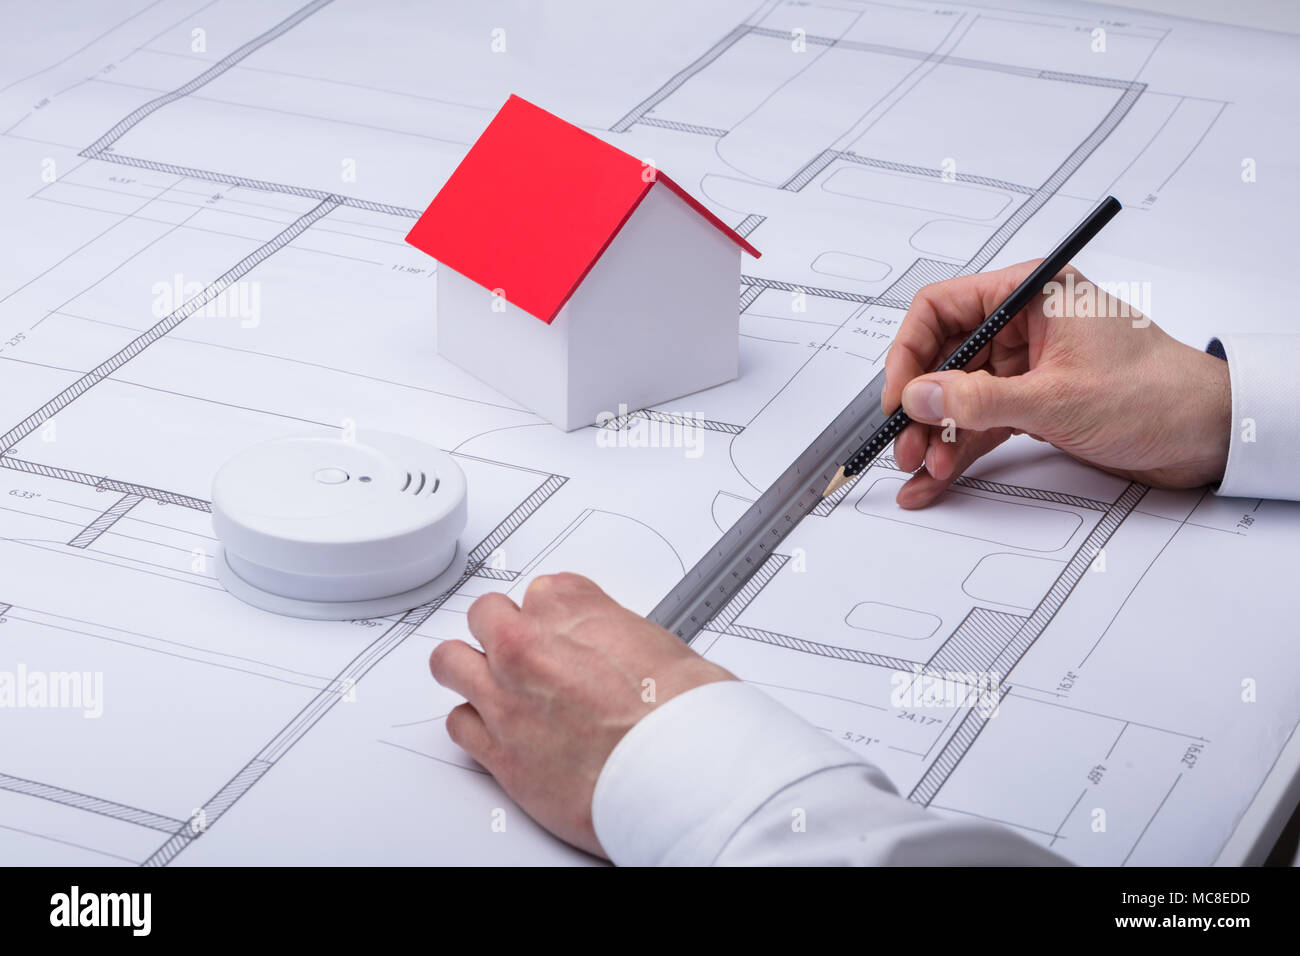 Architecture Drawing Blueprint Near Smoke Detector And House Model - Stock Image